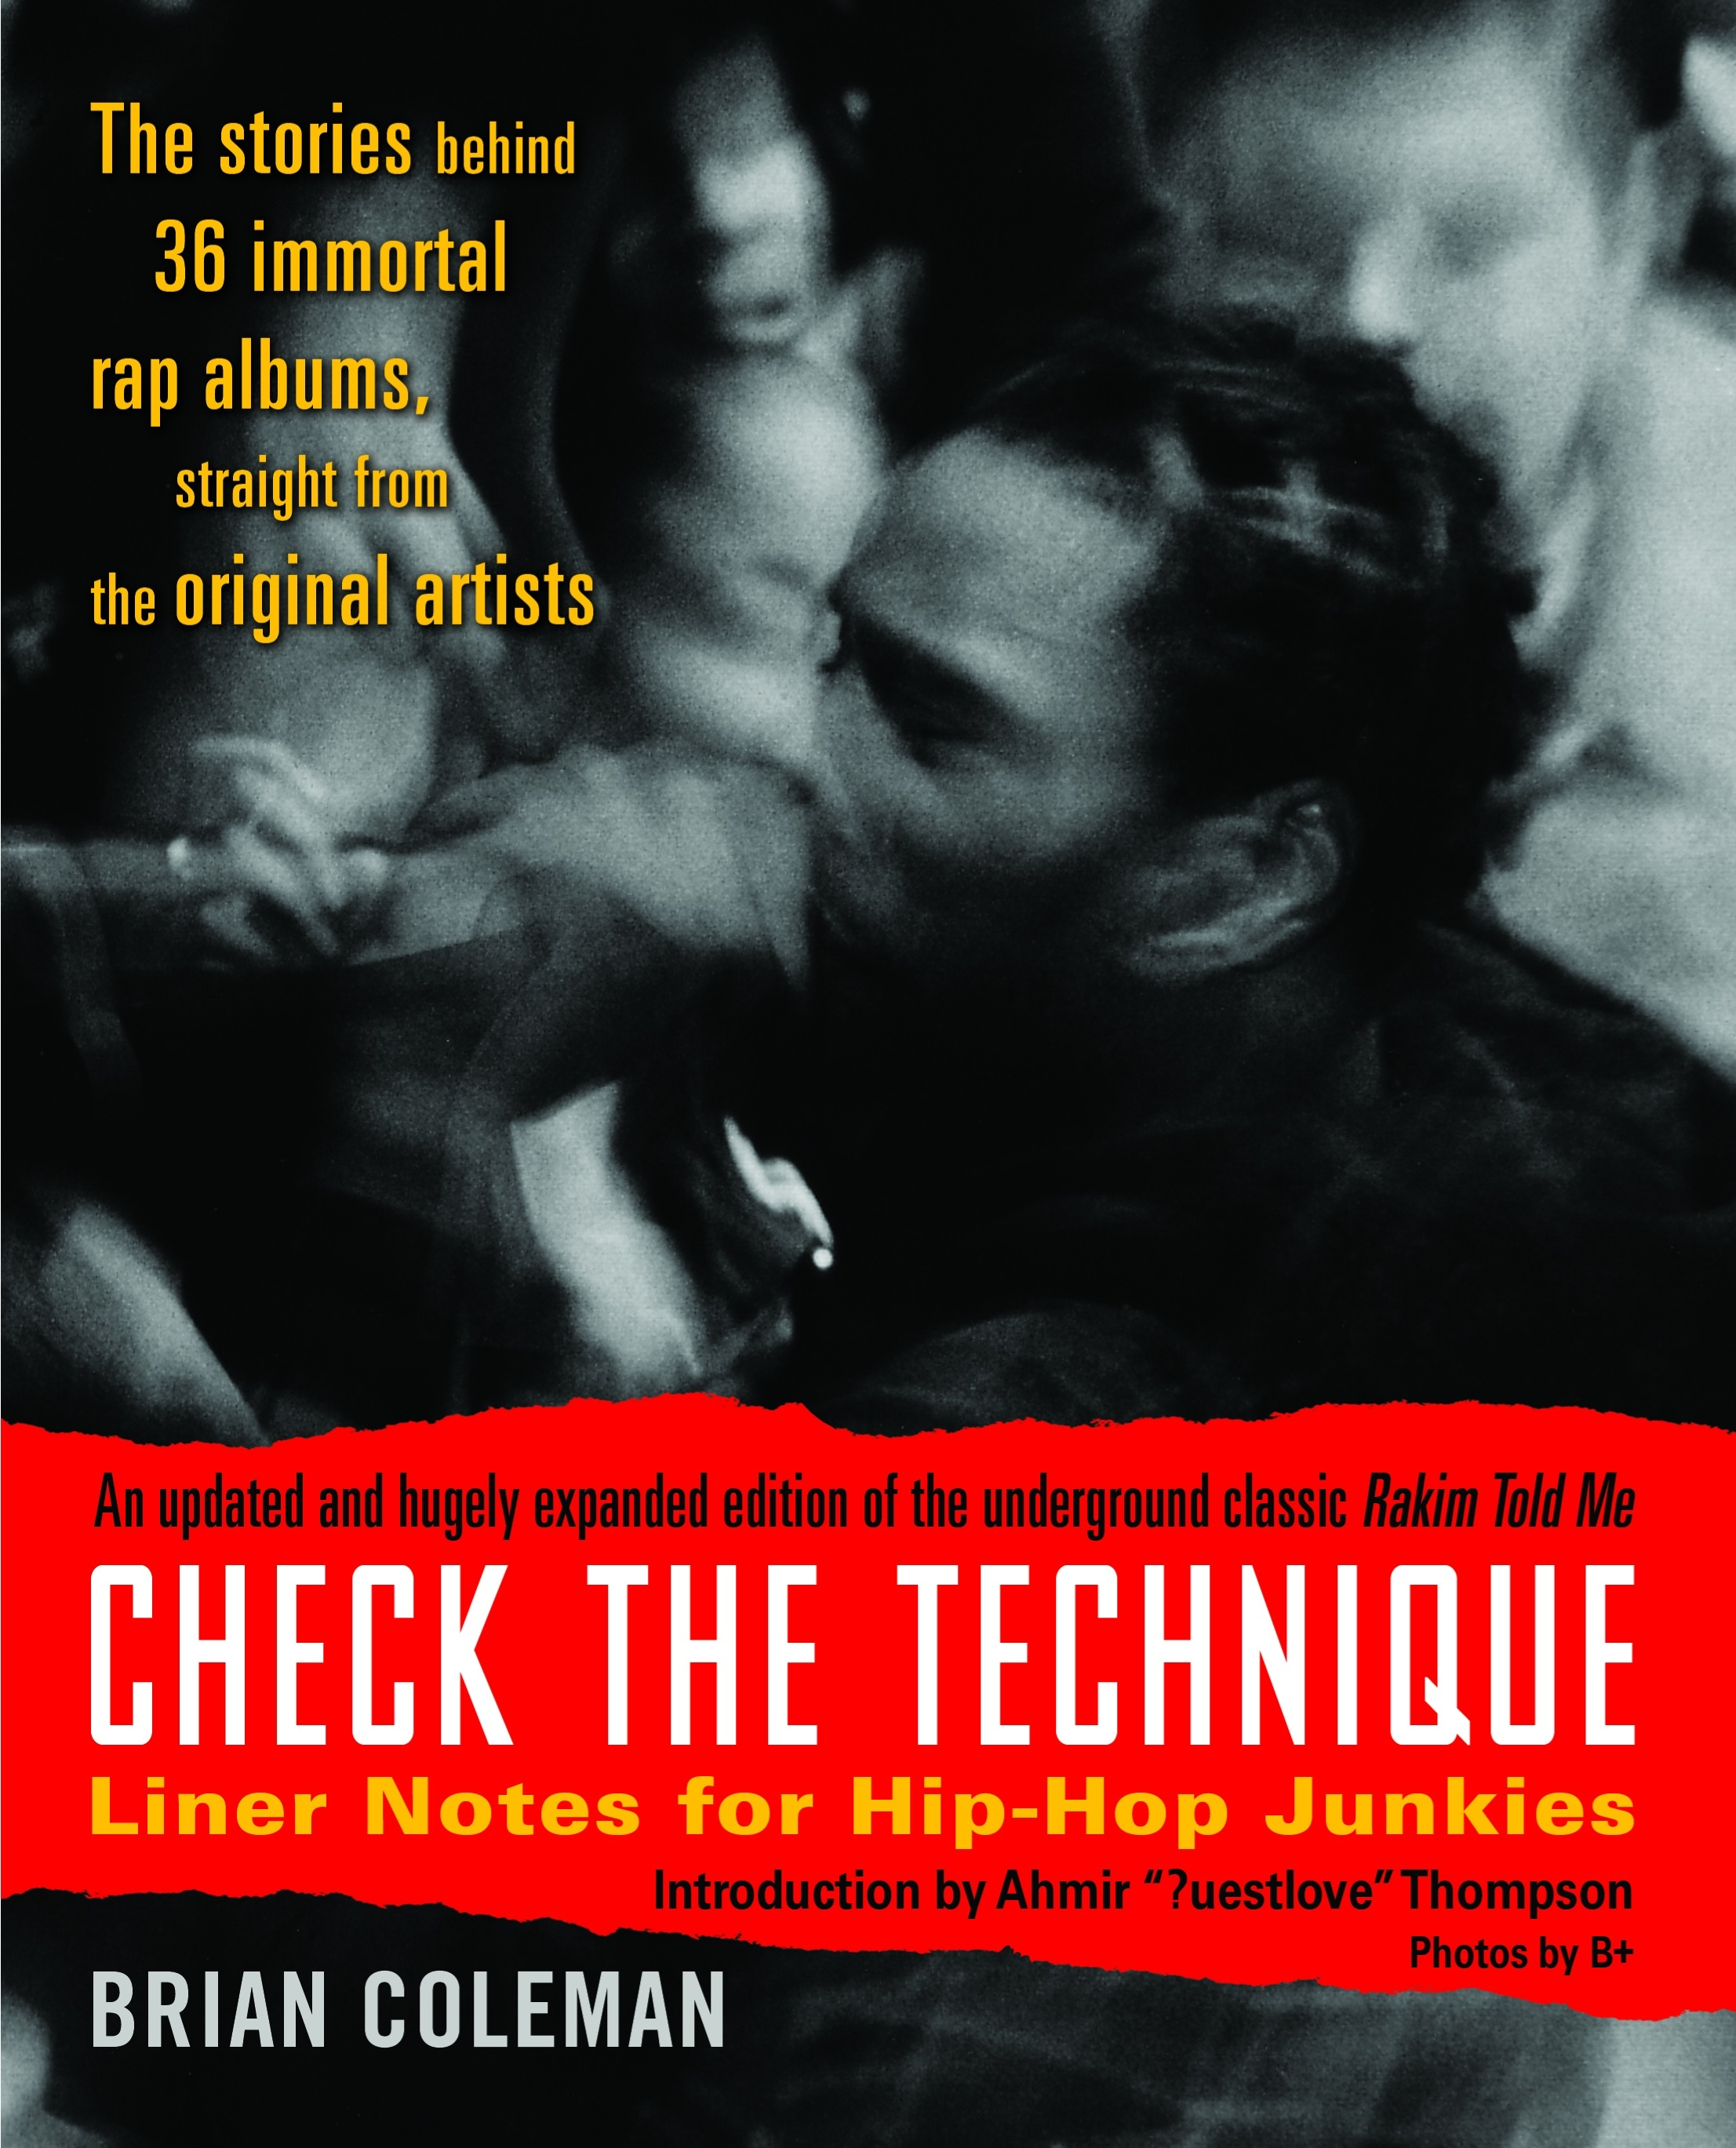 Check The Technique by Brian Coleman, ISBN: 9780812977752